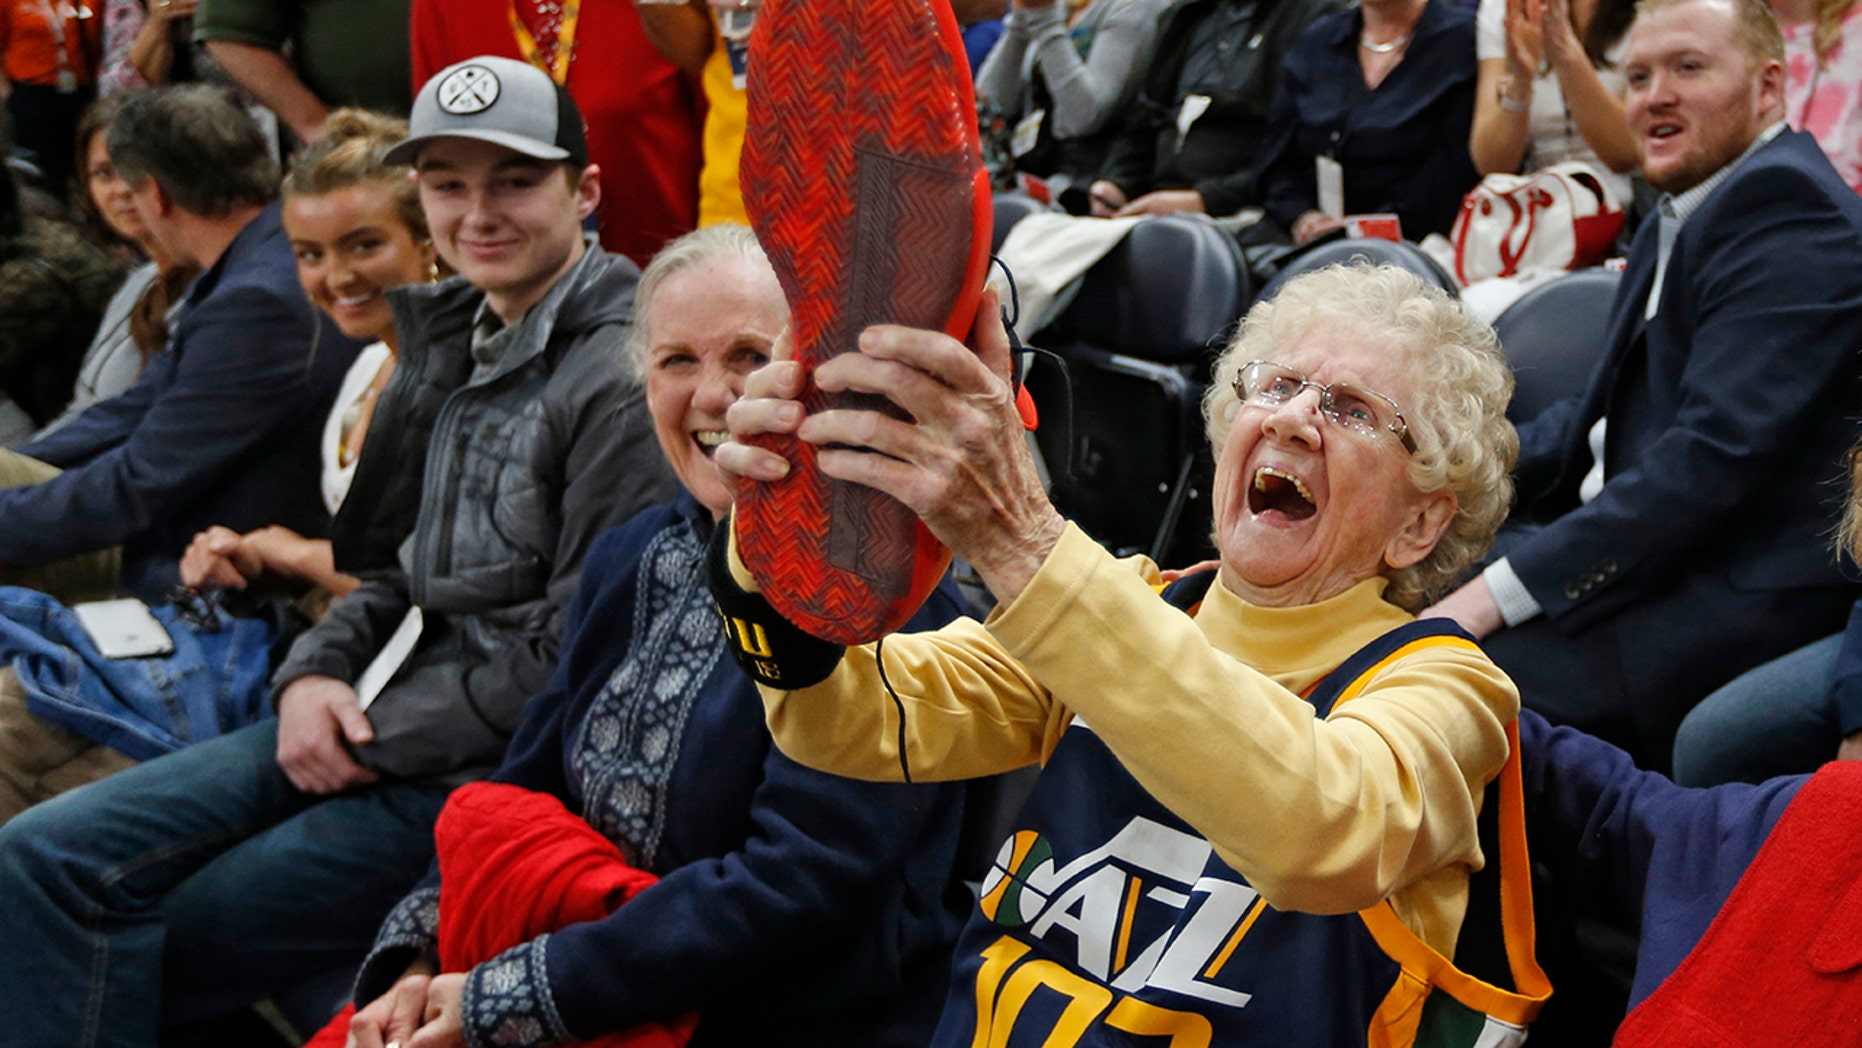 Roberta Morgan, 102, celebrates after Utah Jazz guard Donovan Mitchell handed his basketball shoe to her after he warmed up for the team's NBA basketball game against the Milwaukee Bucks on Saturday, March 2, 2019, in Salt Lake City.